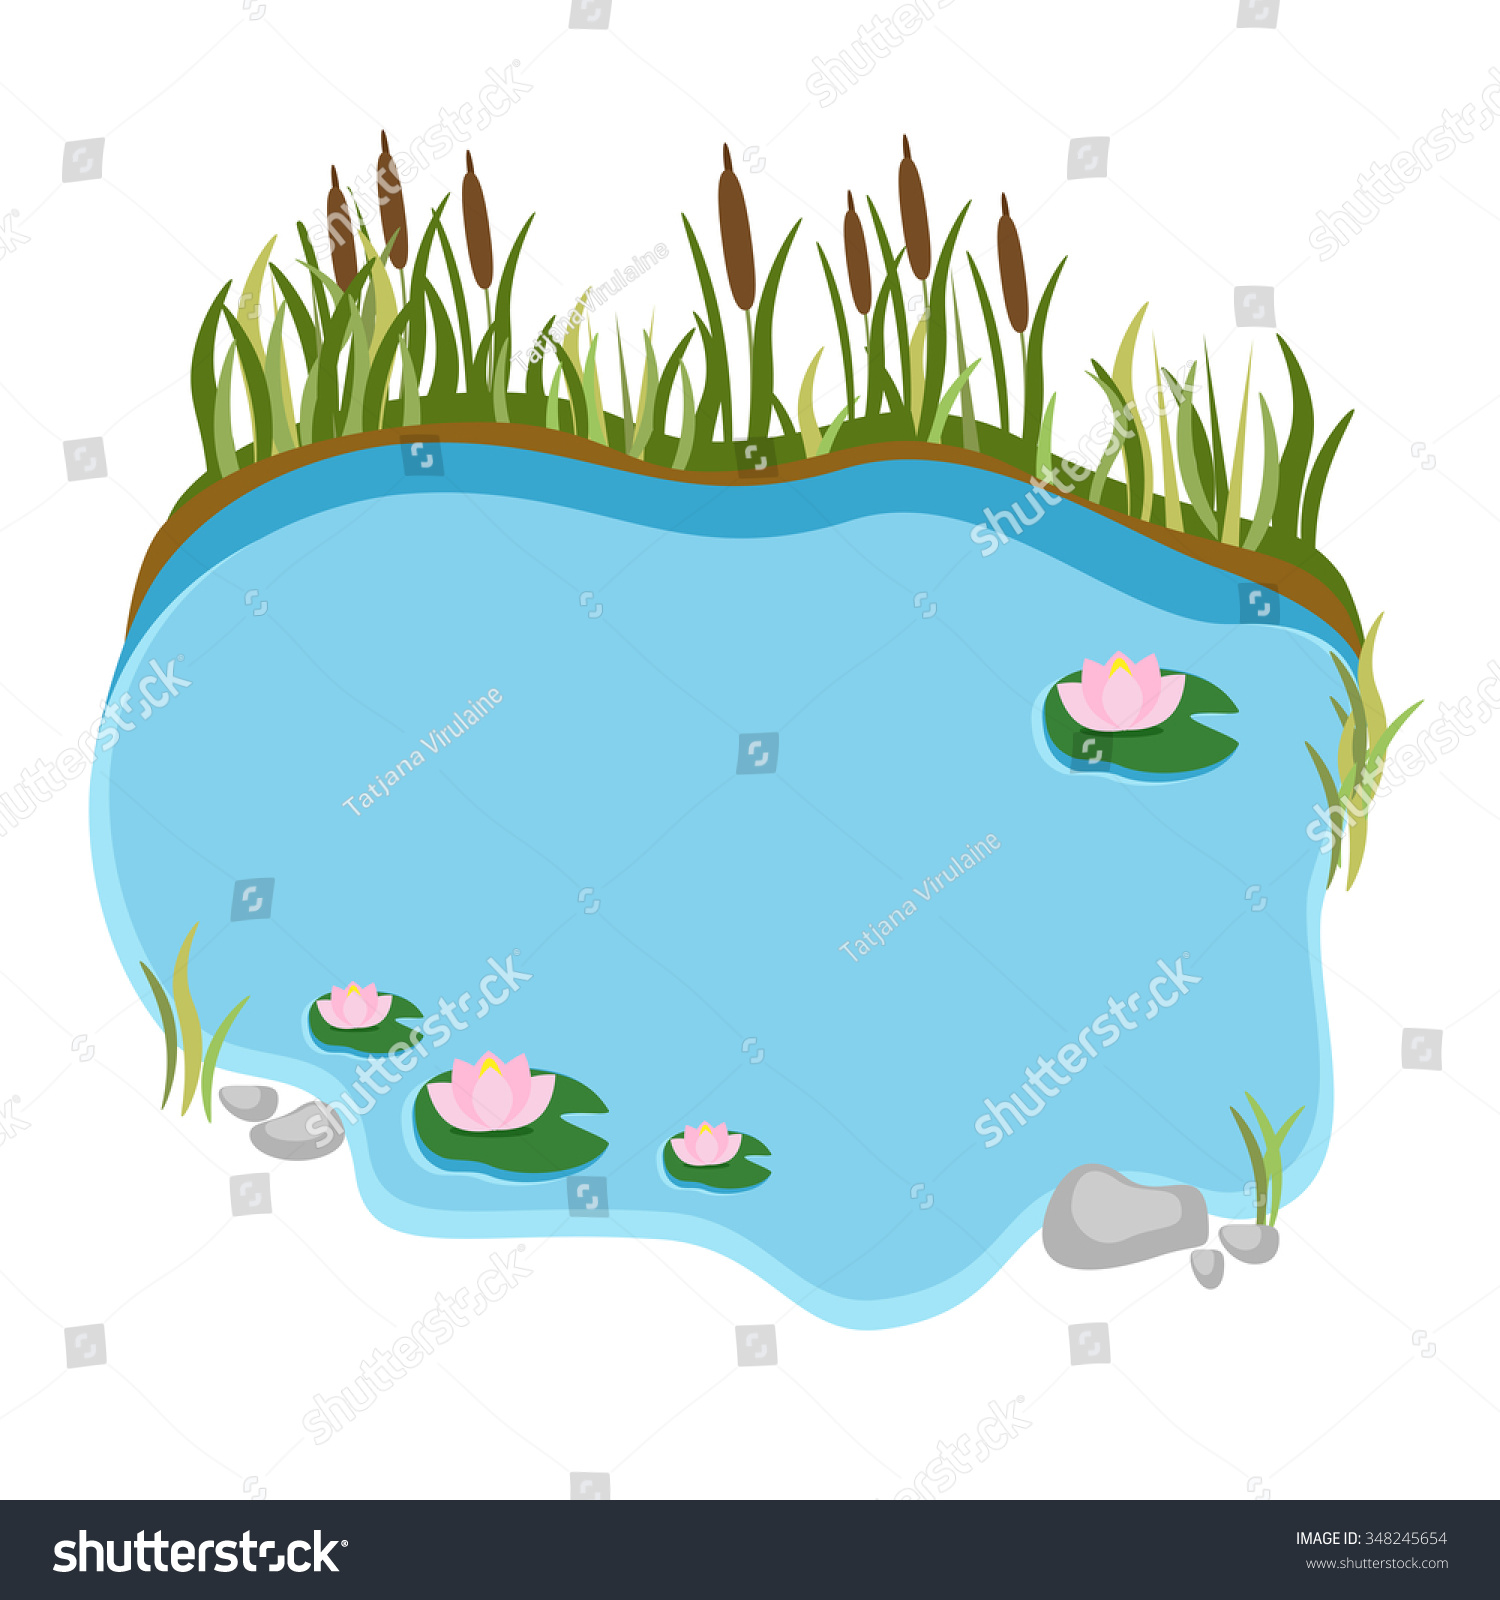 Swamp Water Lilies Reeds Vector Illustration Stock Vector Royalty Free 348245654